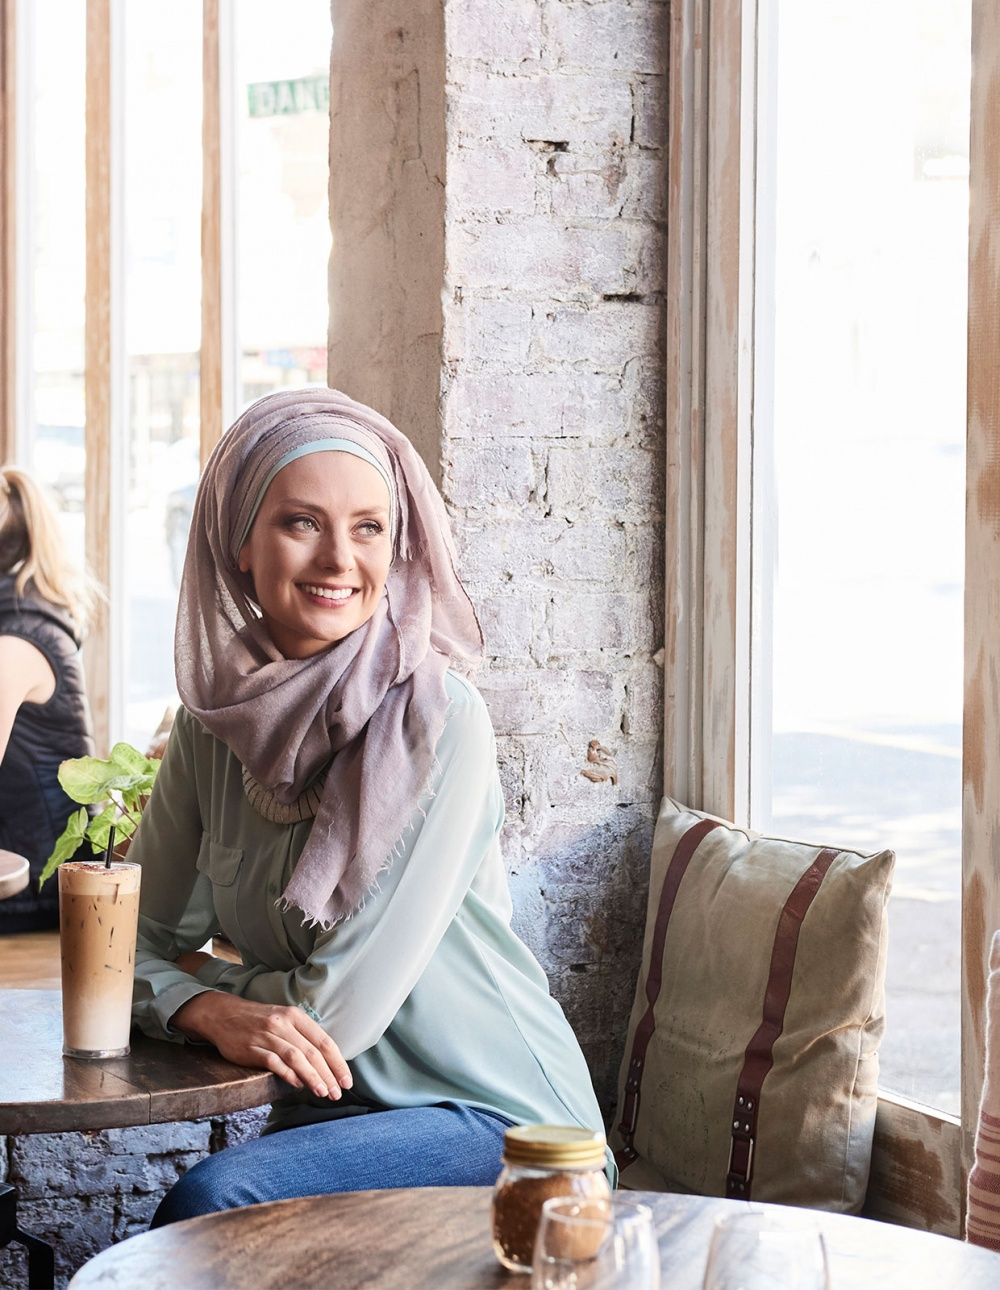 susan carland - Researcher and author